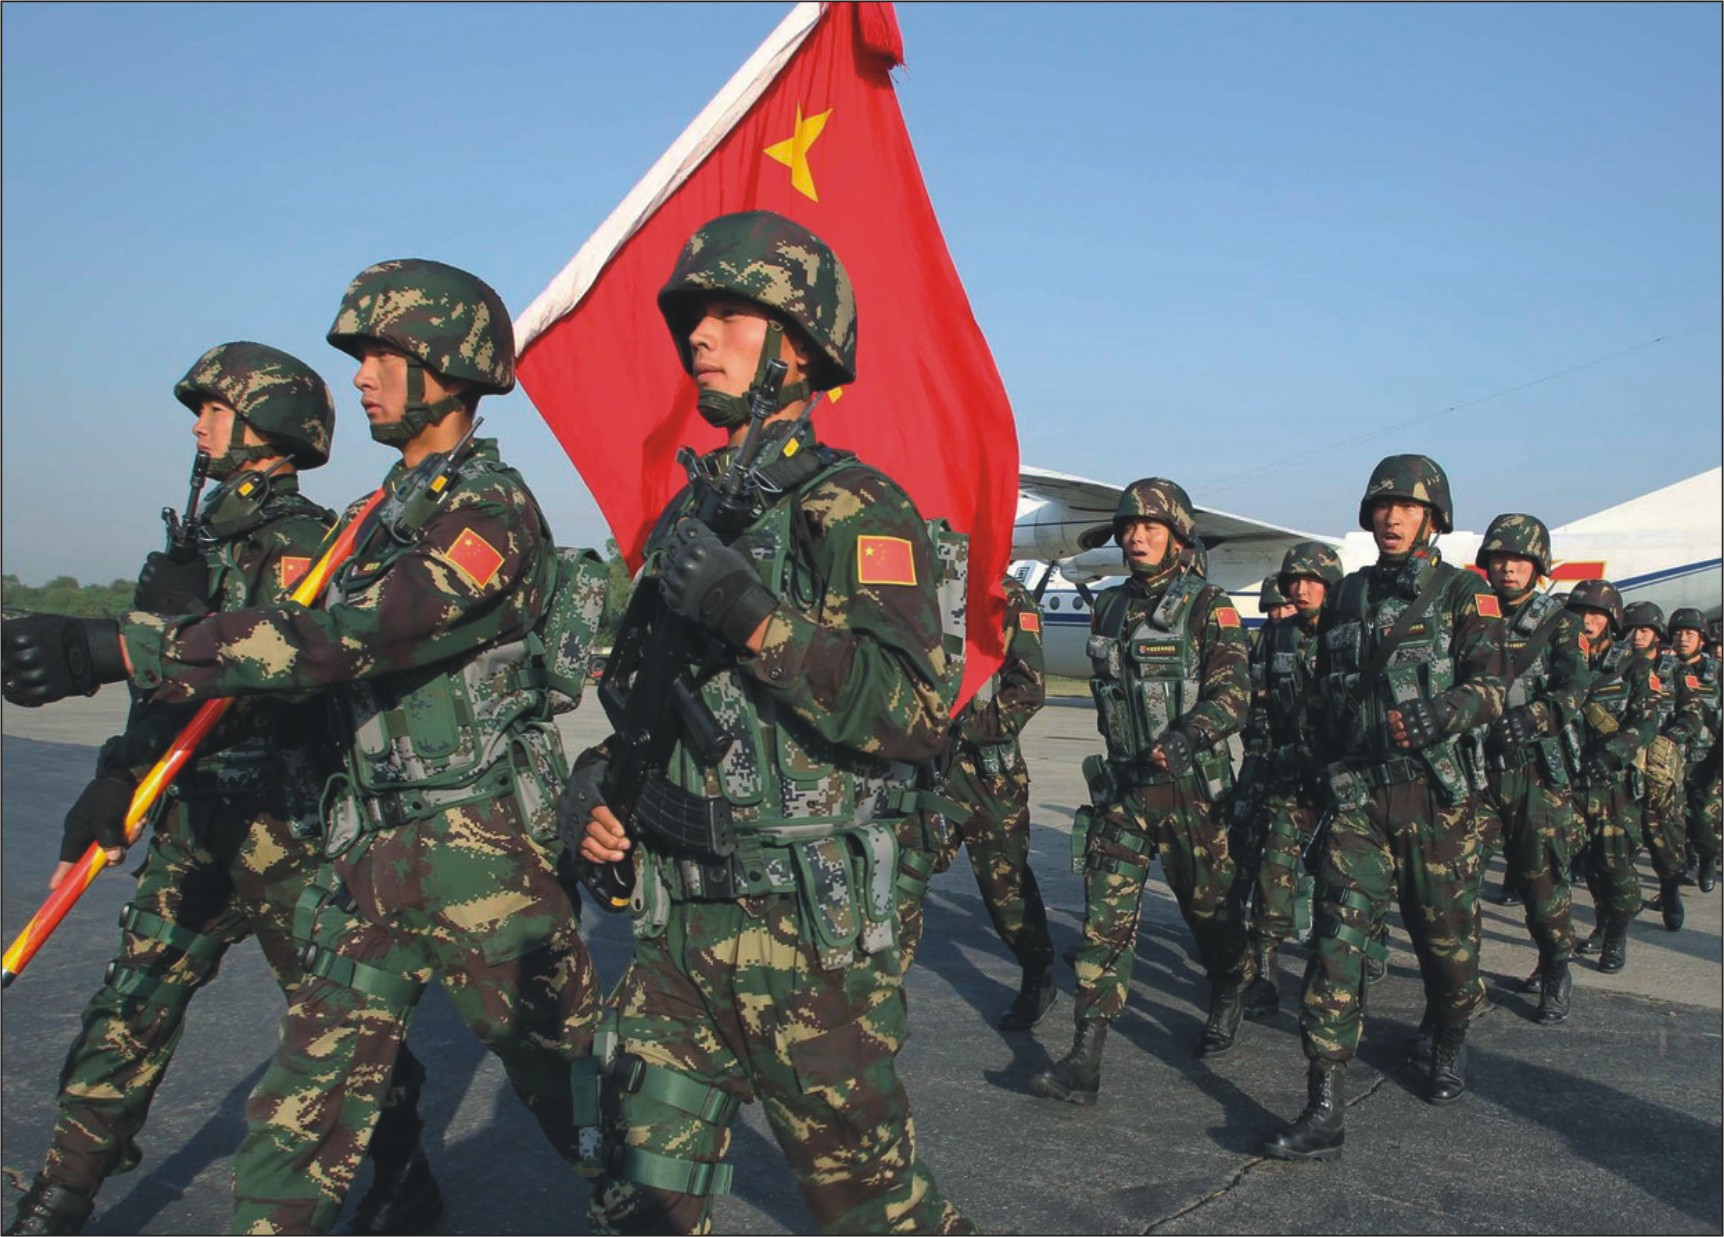 Image result for CHINA'S RAPIDLY GROWING THREAT TO WORLD SECURITY STRATEGIC INFRASTRUCTURE PLAN PRECEDES MILITARY OPTION